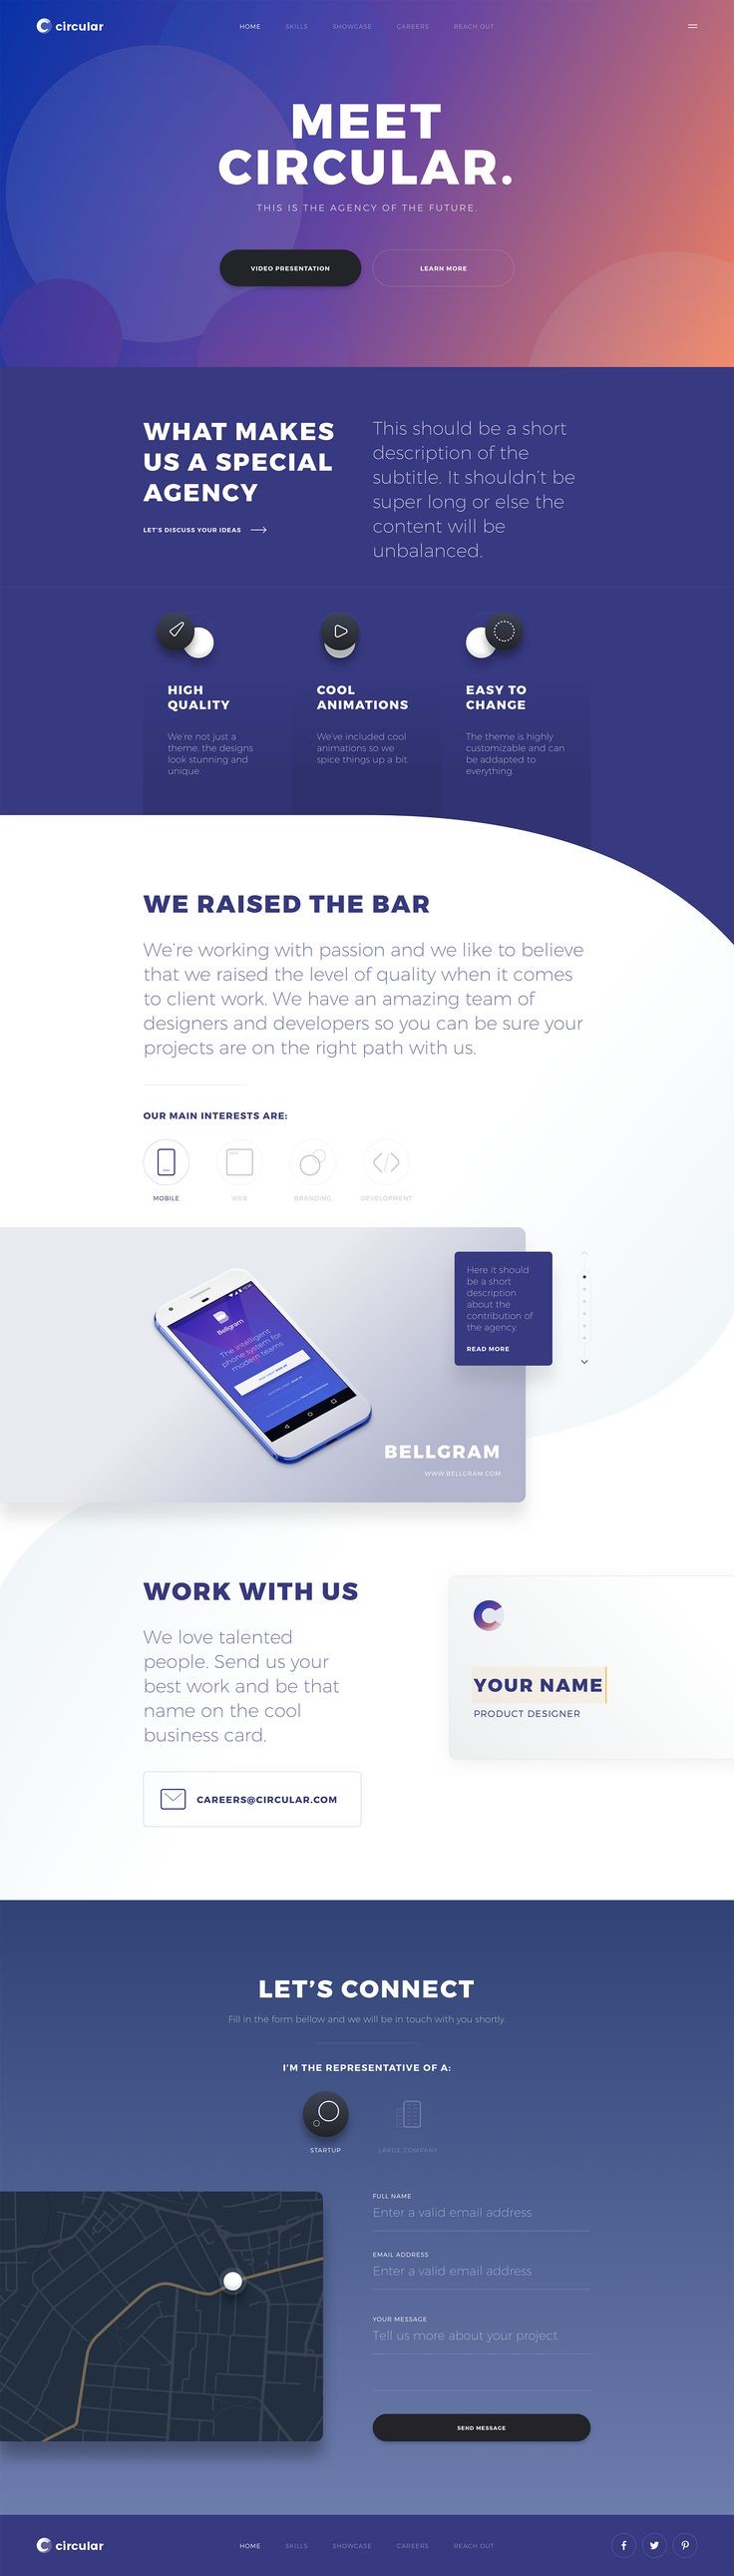 Circular – Awesome pack of unique landing pages. Ui design and concept by Ionut Zamfir